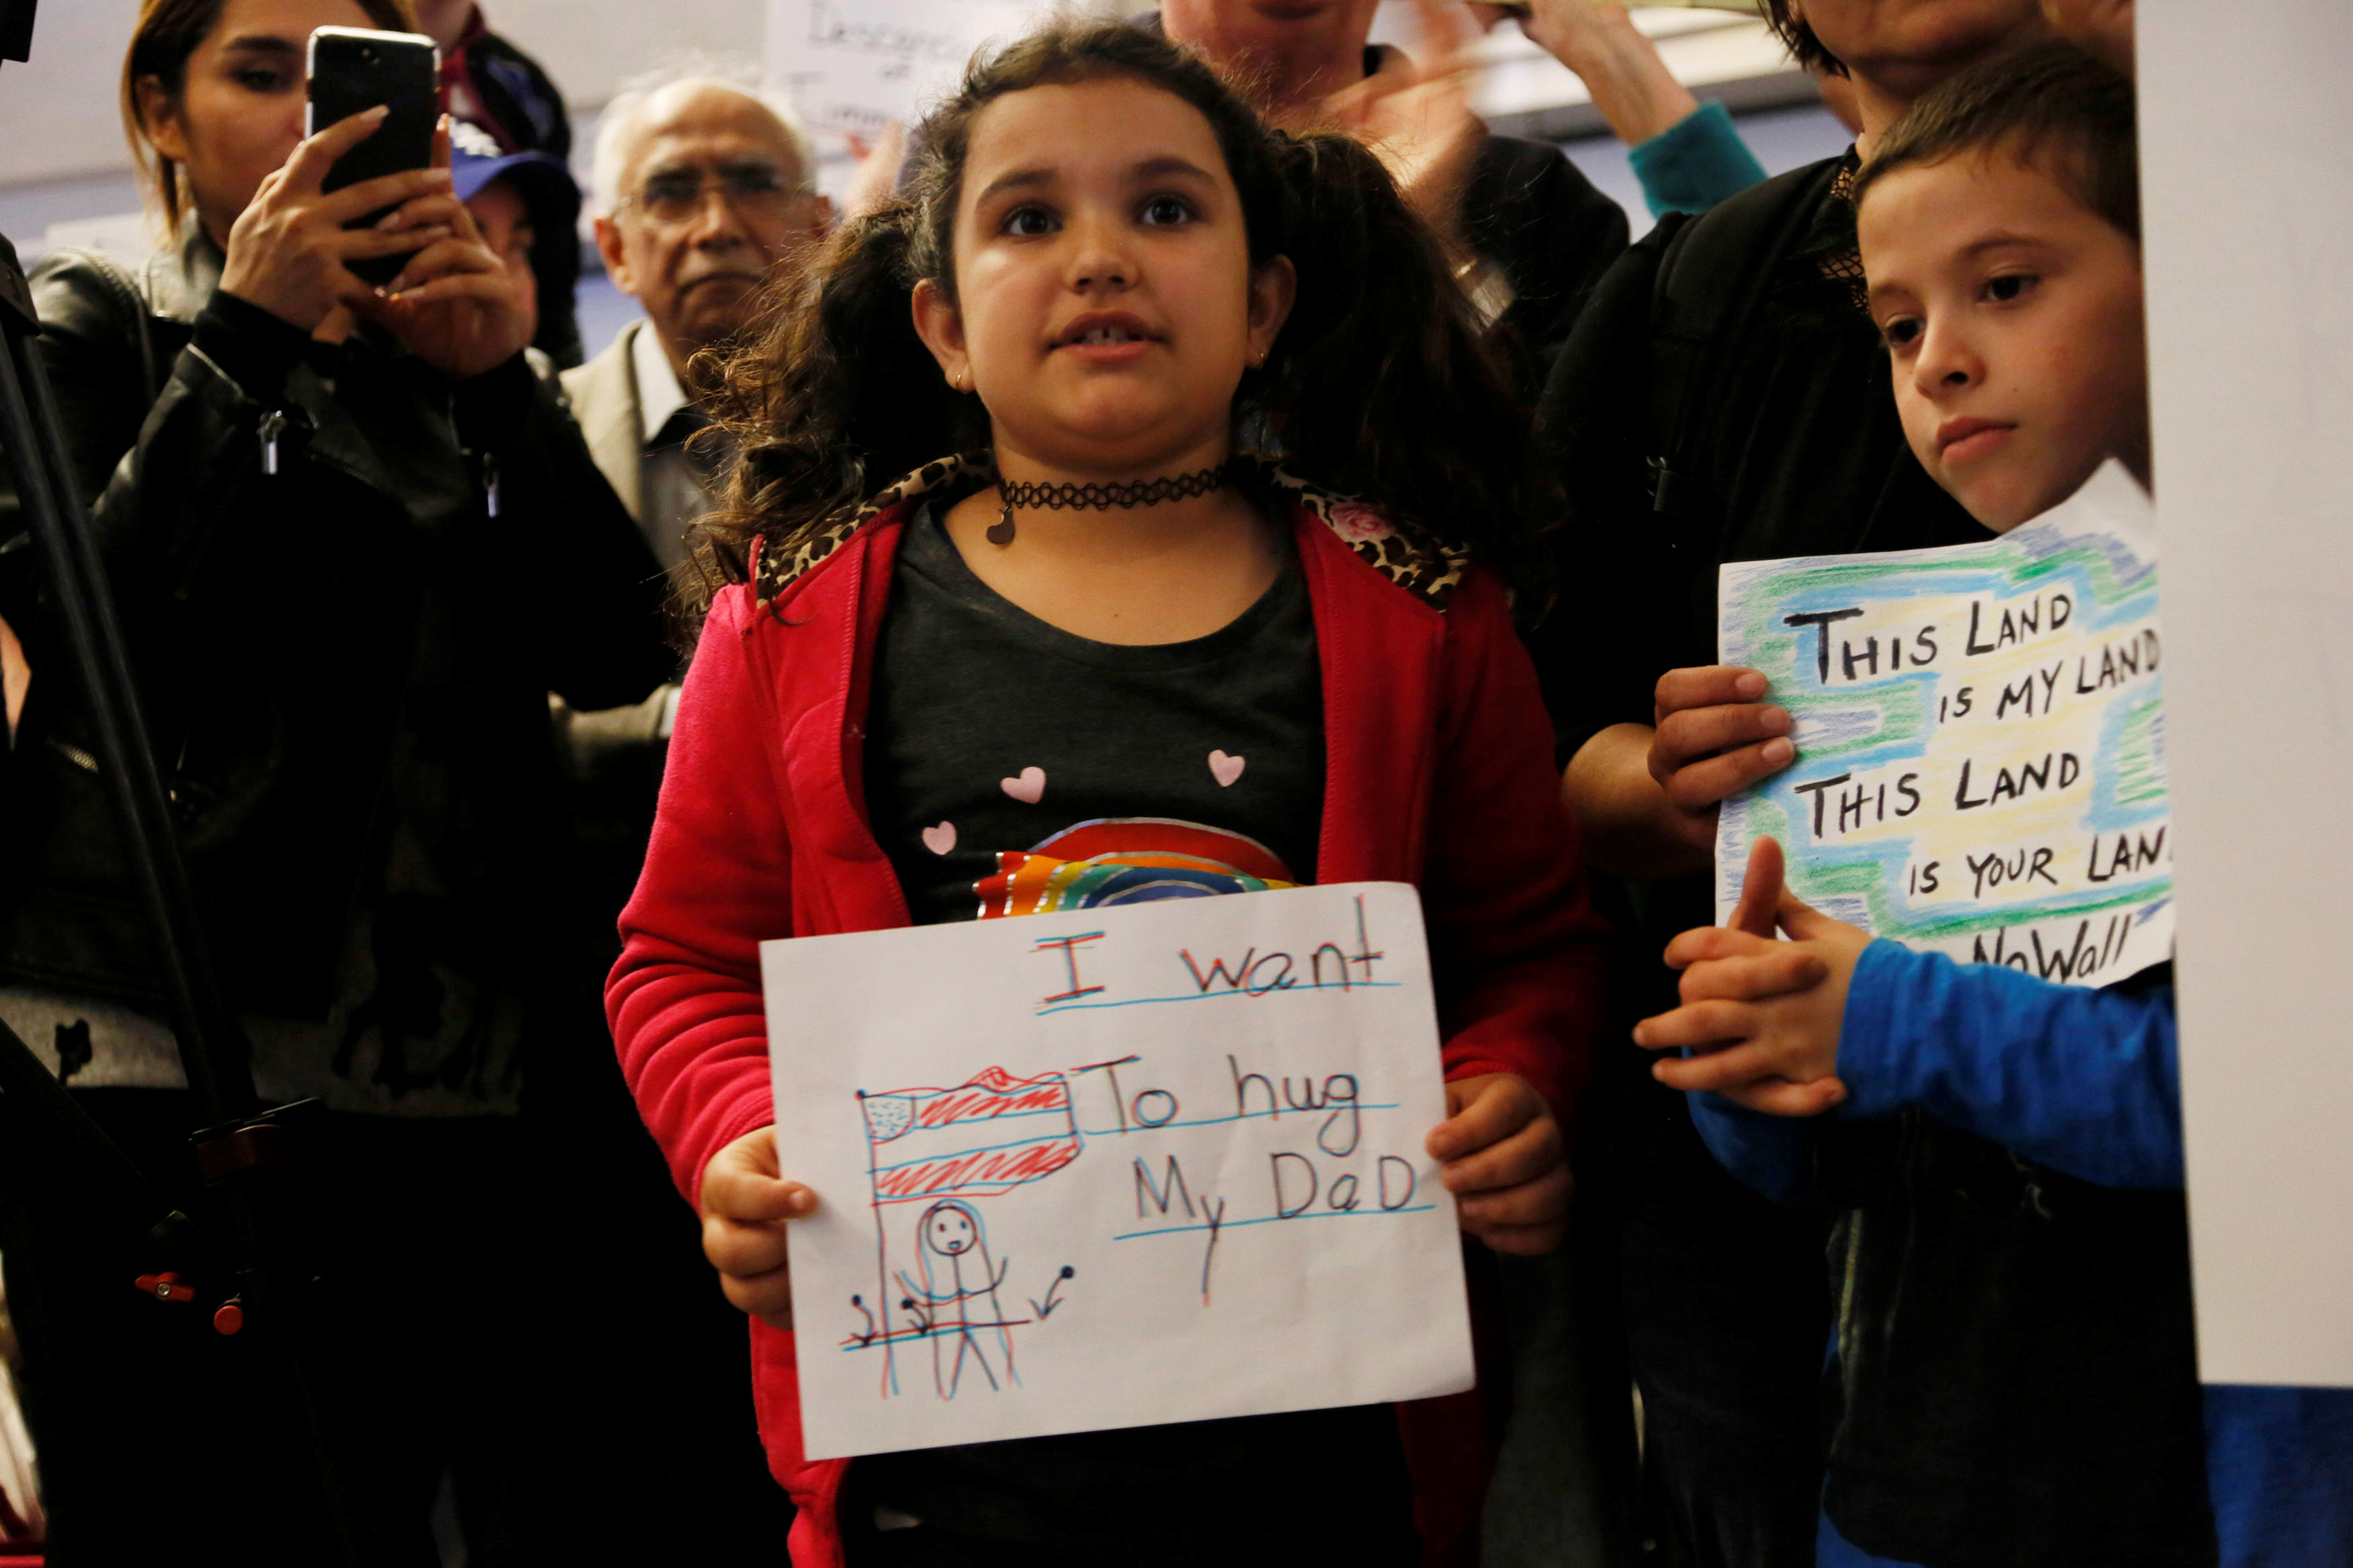 """Young girl holding sign in front of crowd, """"I want to hug my dad"""""""